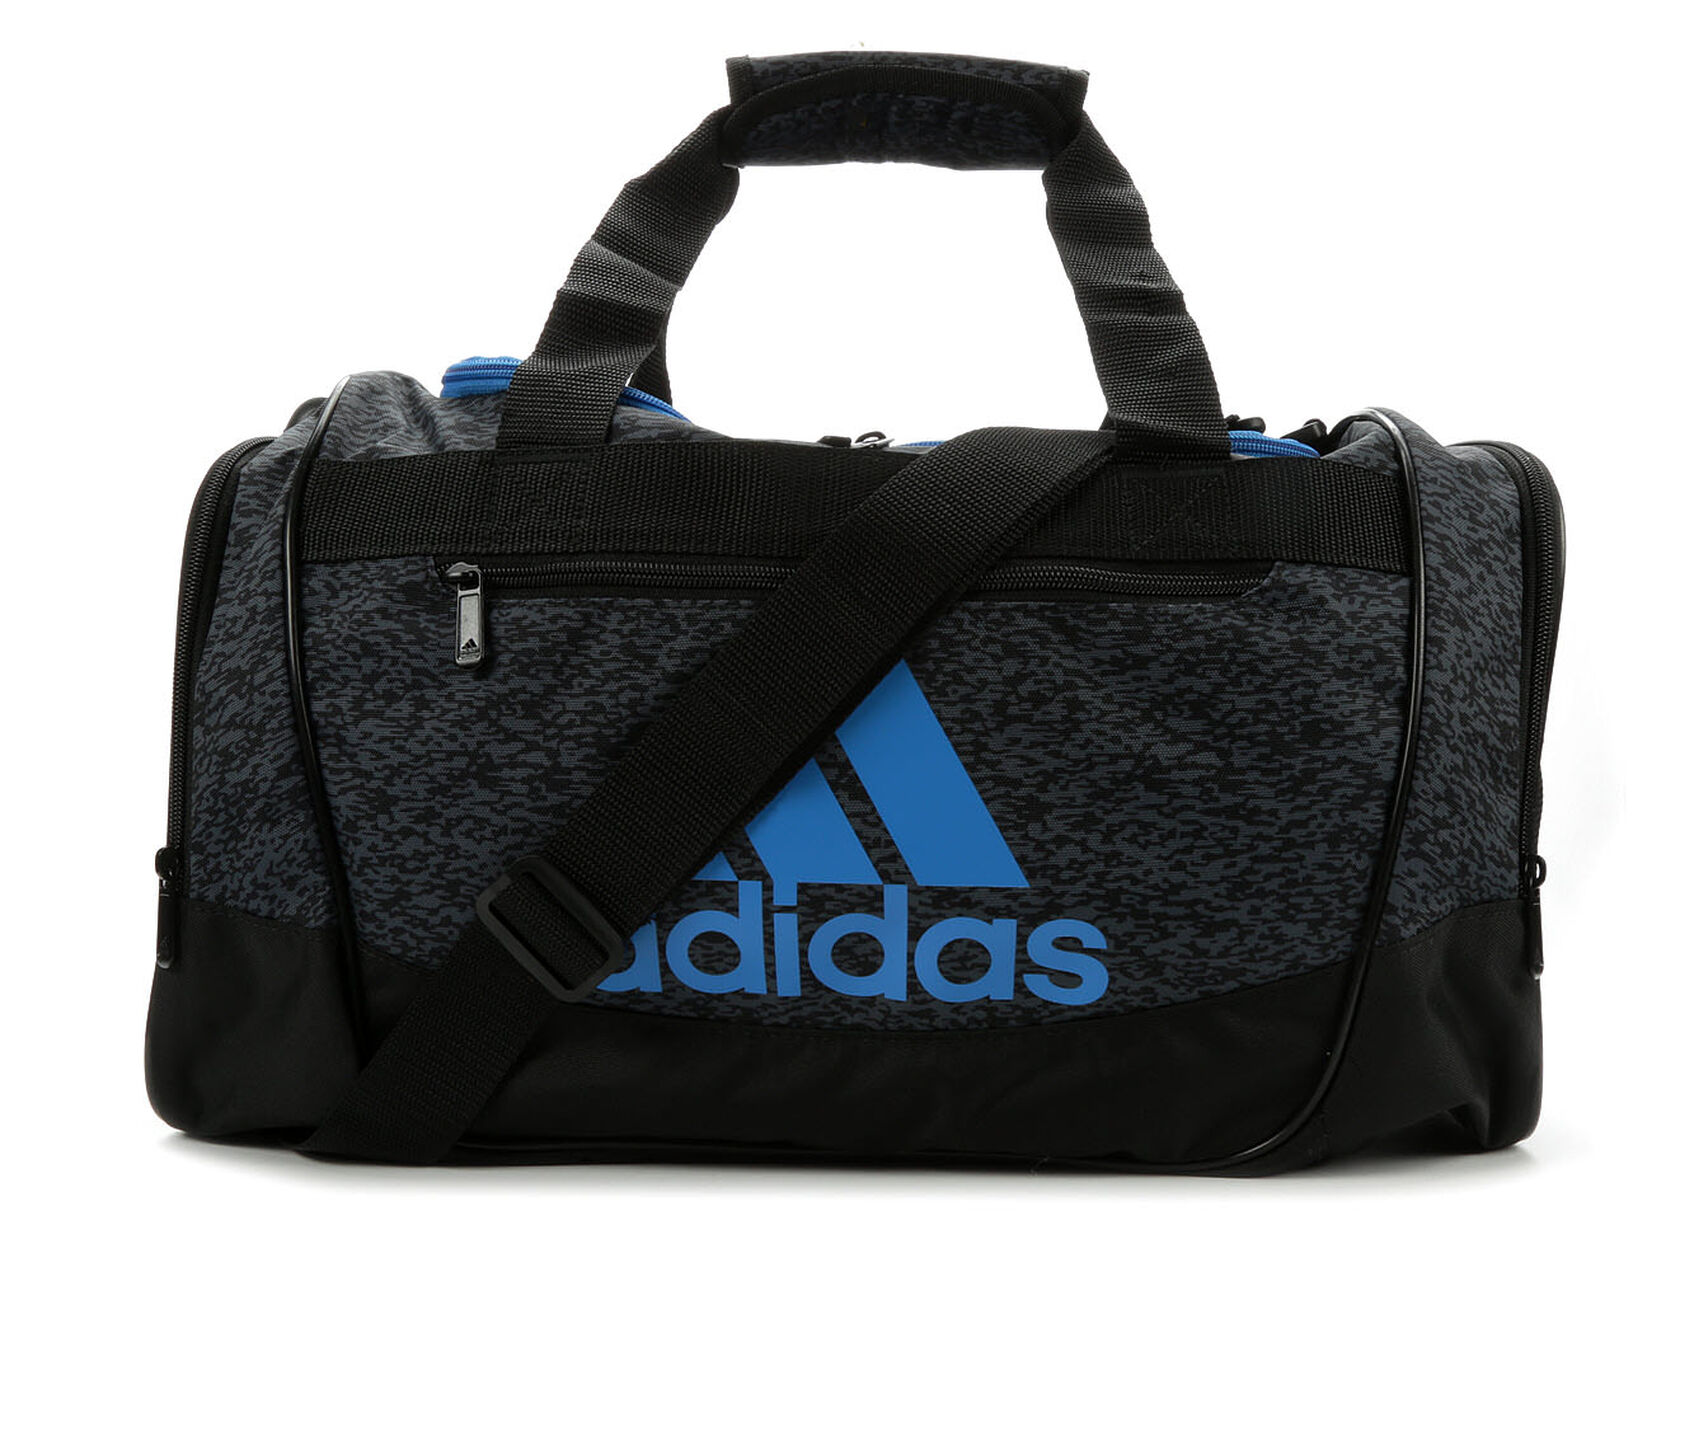 c2a04ab97b Adidas Defender III Small Duffel Bag. Previous